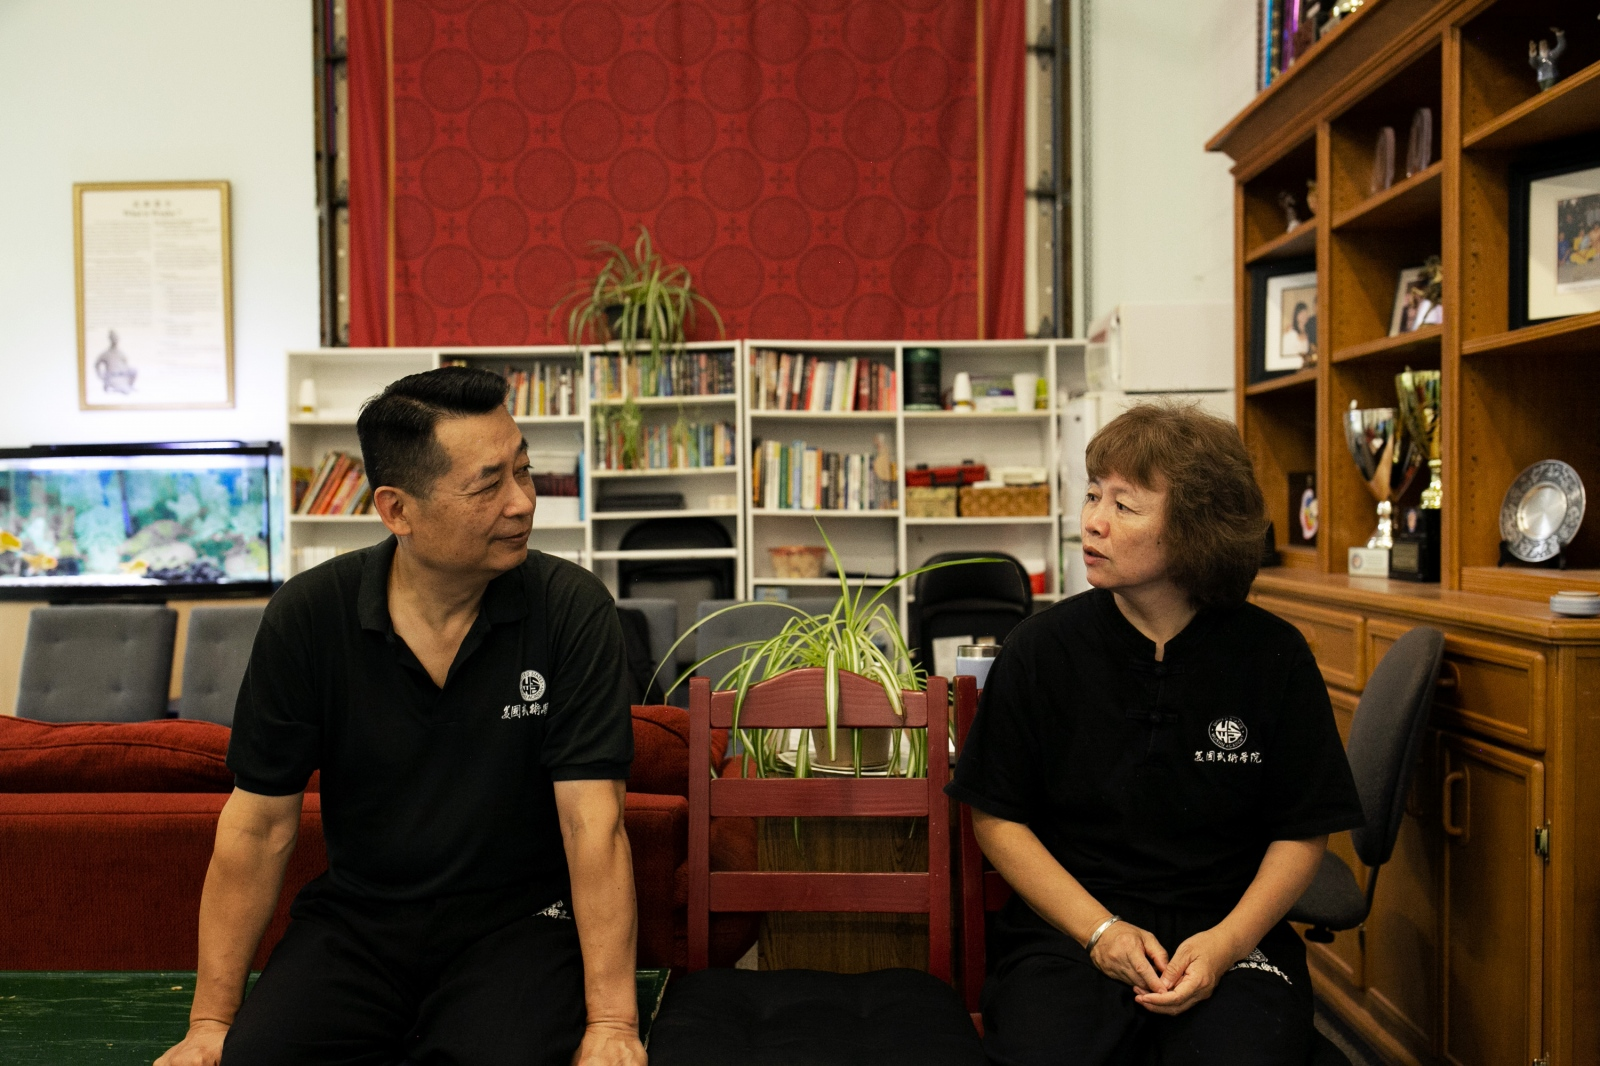 Pei and Zhang chat during a class break. The couple met and married in the 1980s.